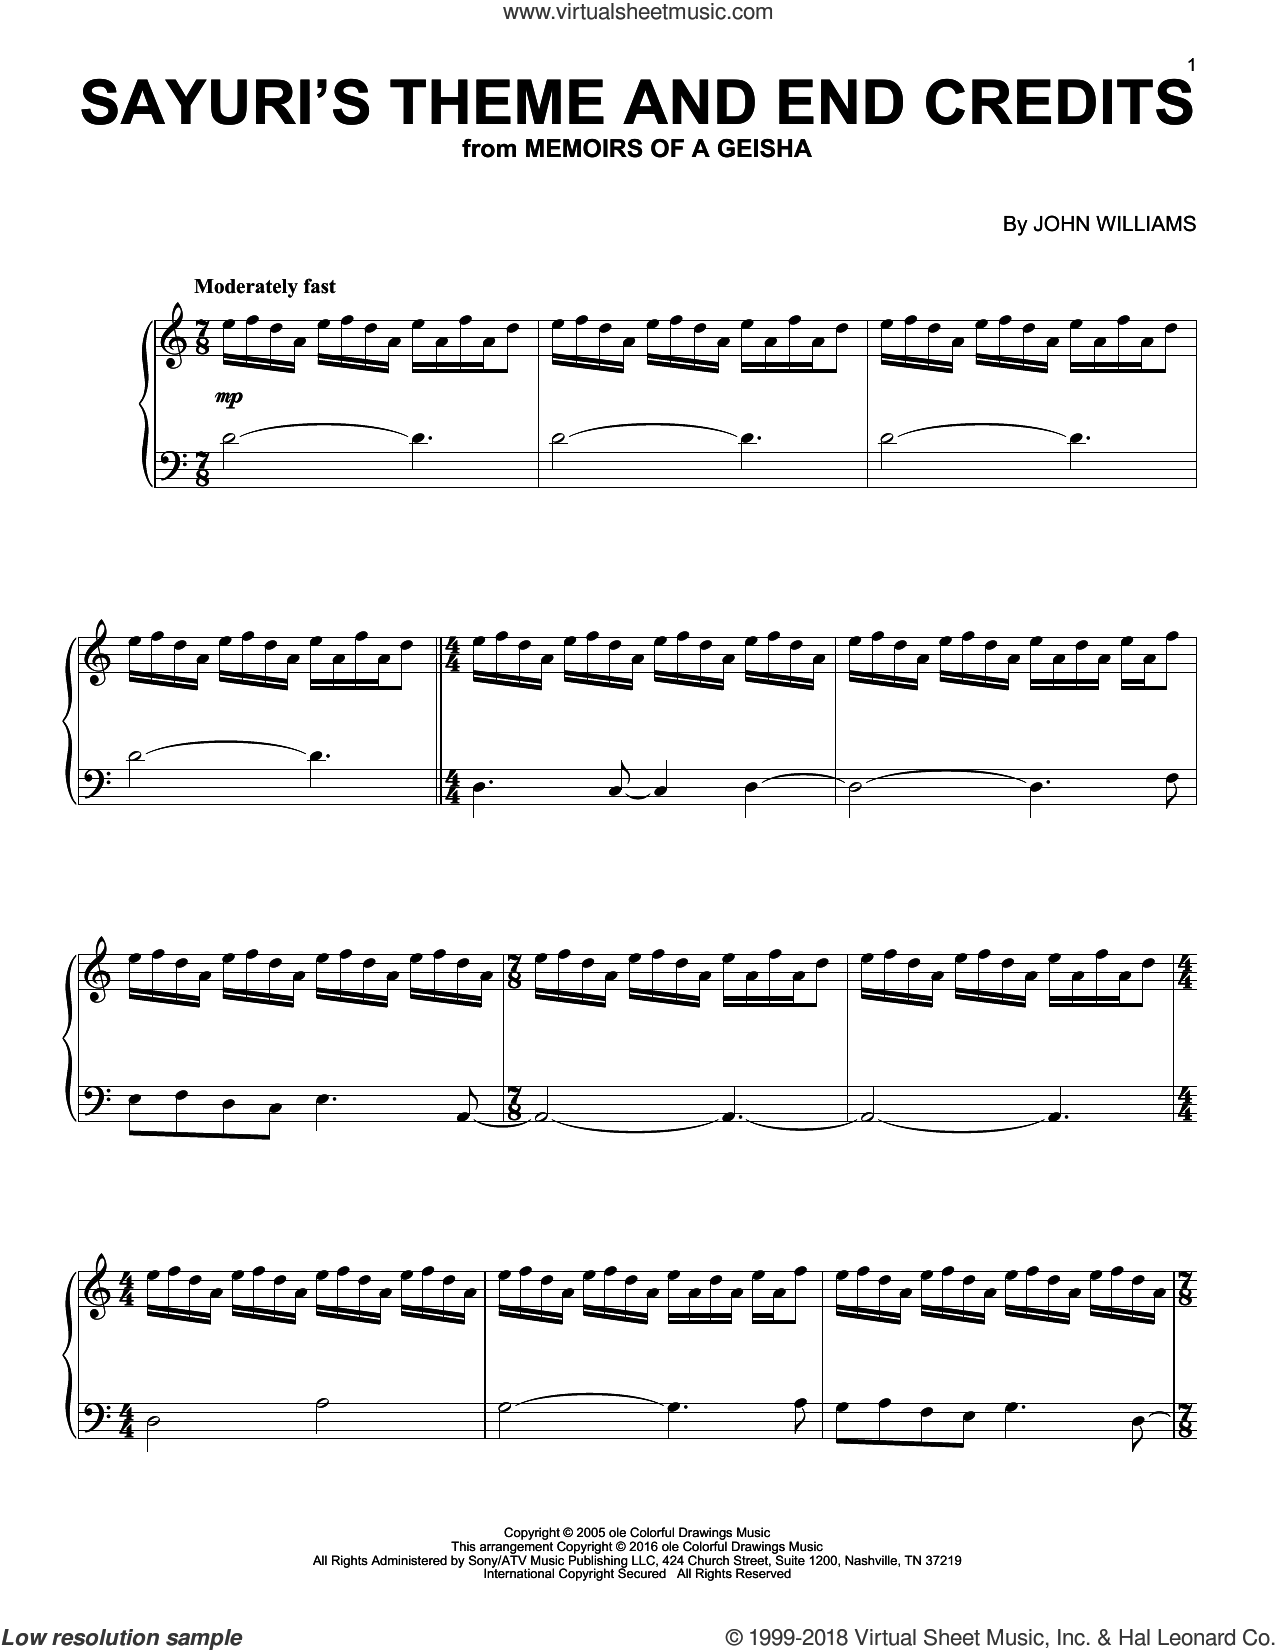 Sayuri's Theme And End Credits sheet music for piano solo by John Williams. Score Image Preview.